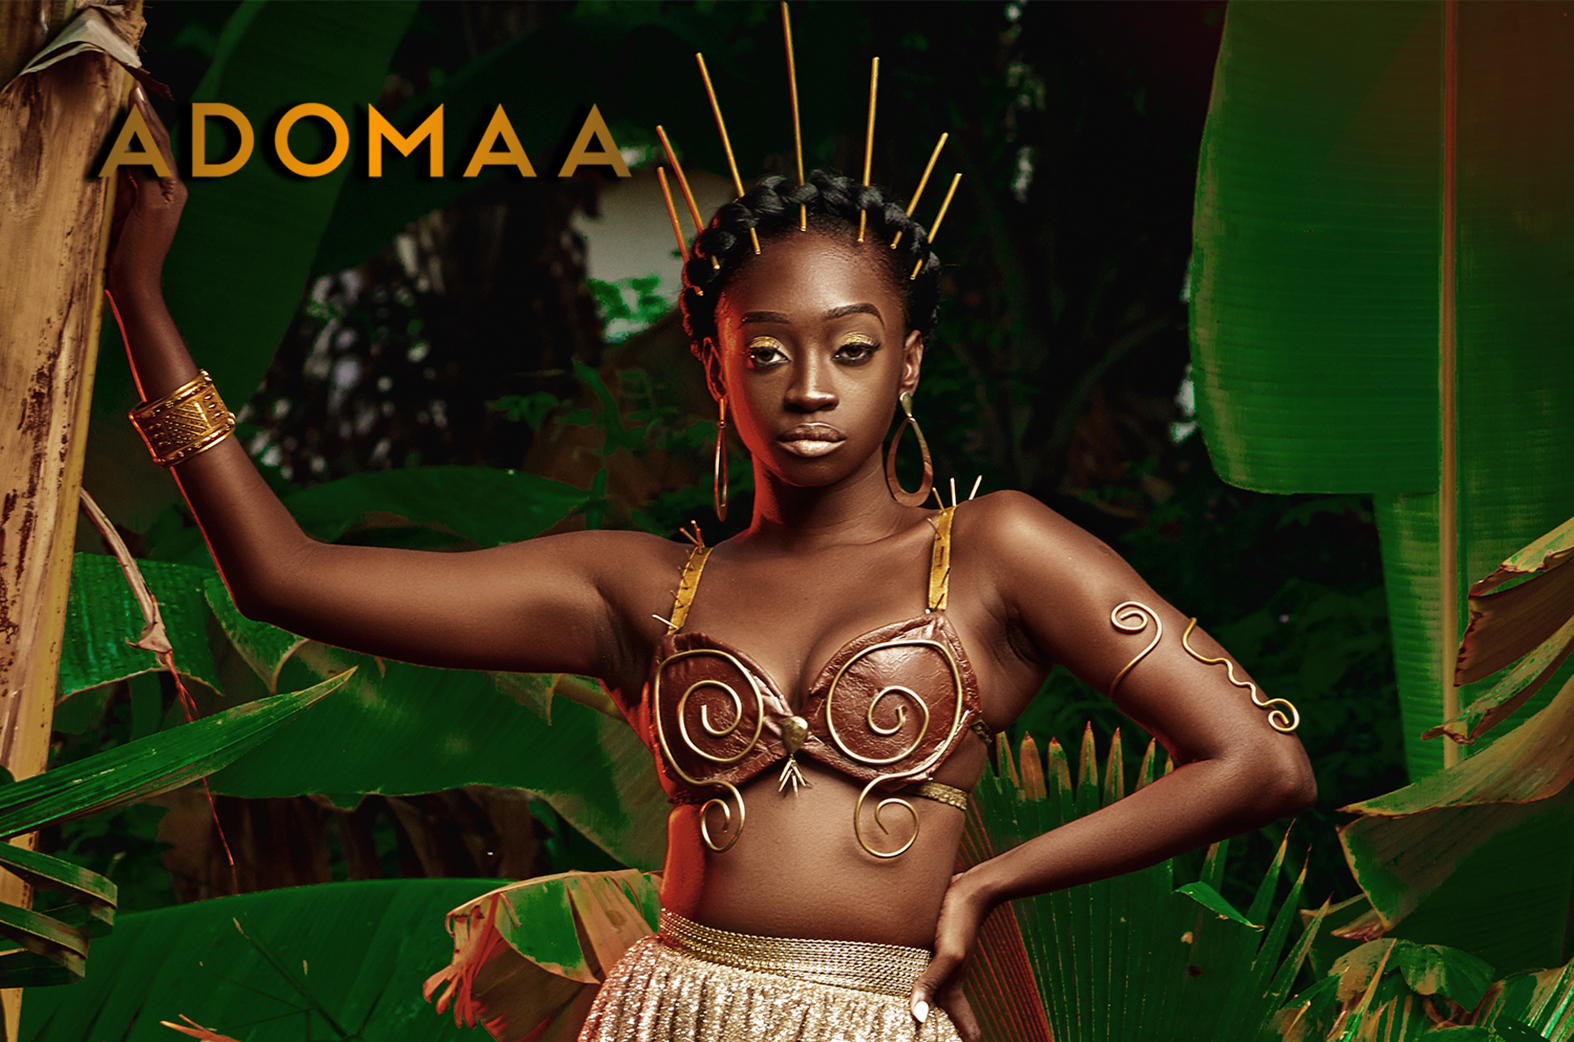 Adomaa partners with Aftown for the release of Adomaa Vs Adomaa EP on Sept. 8